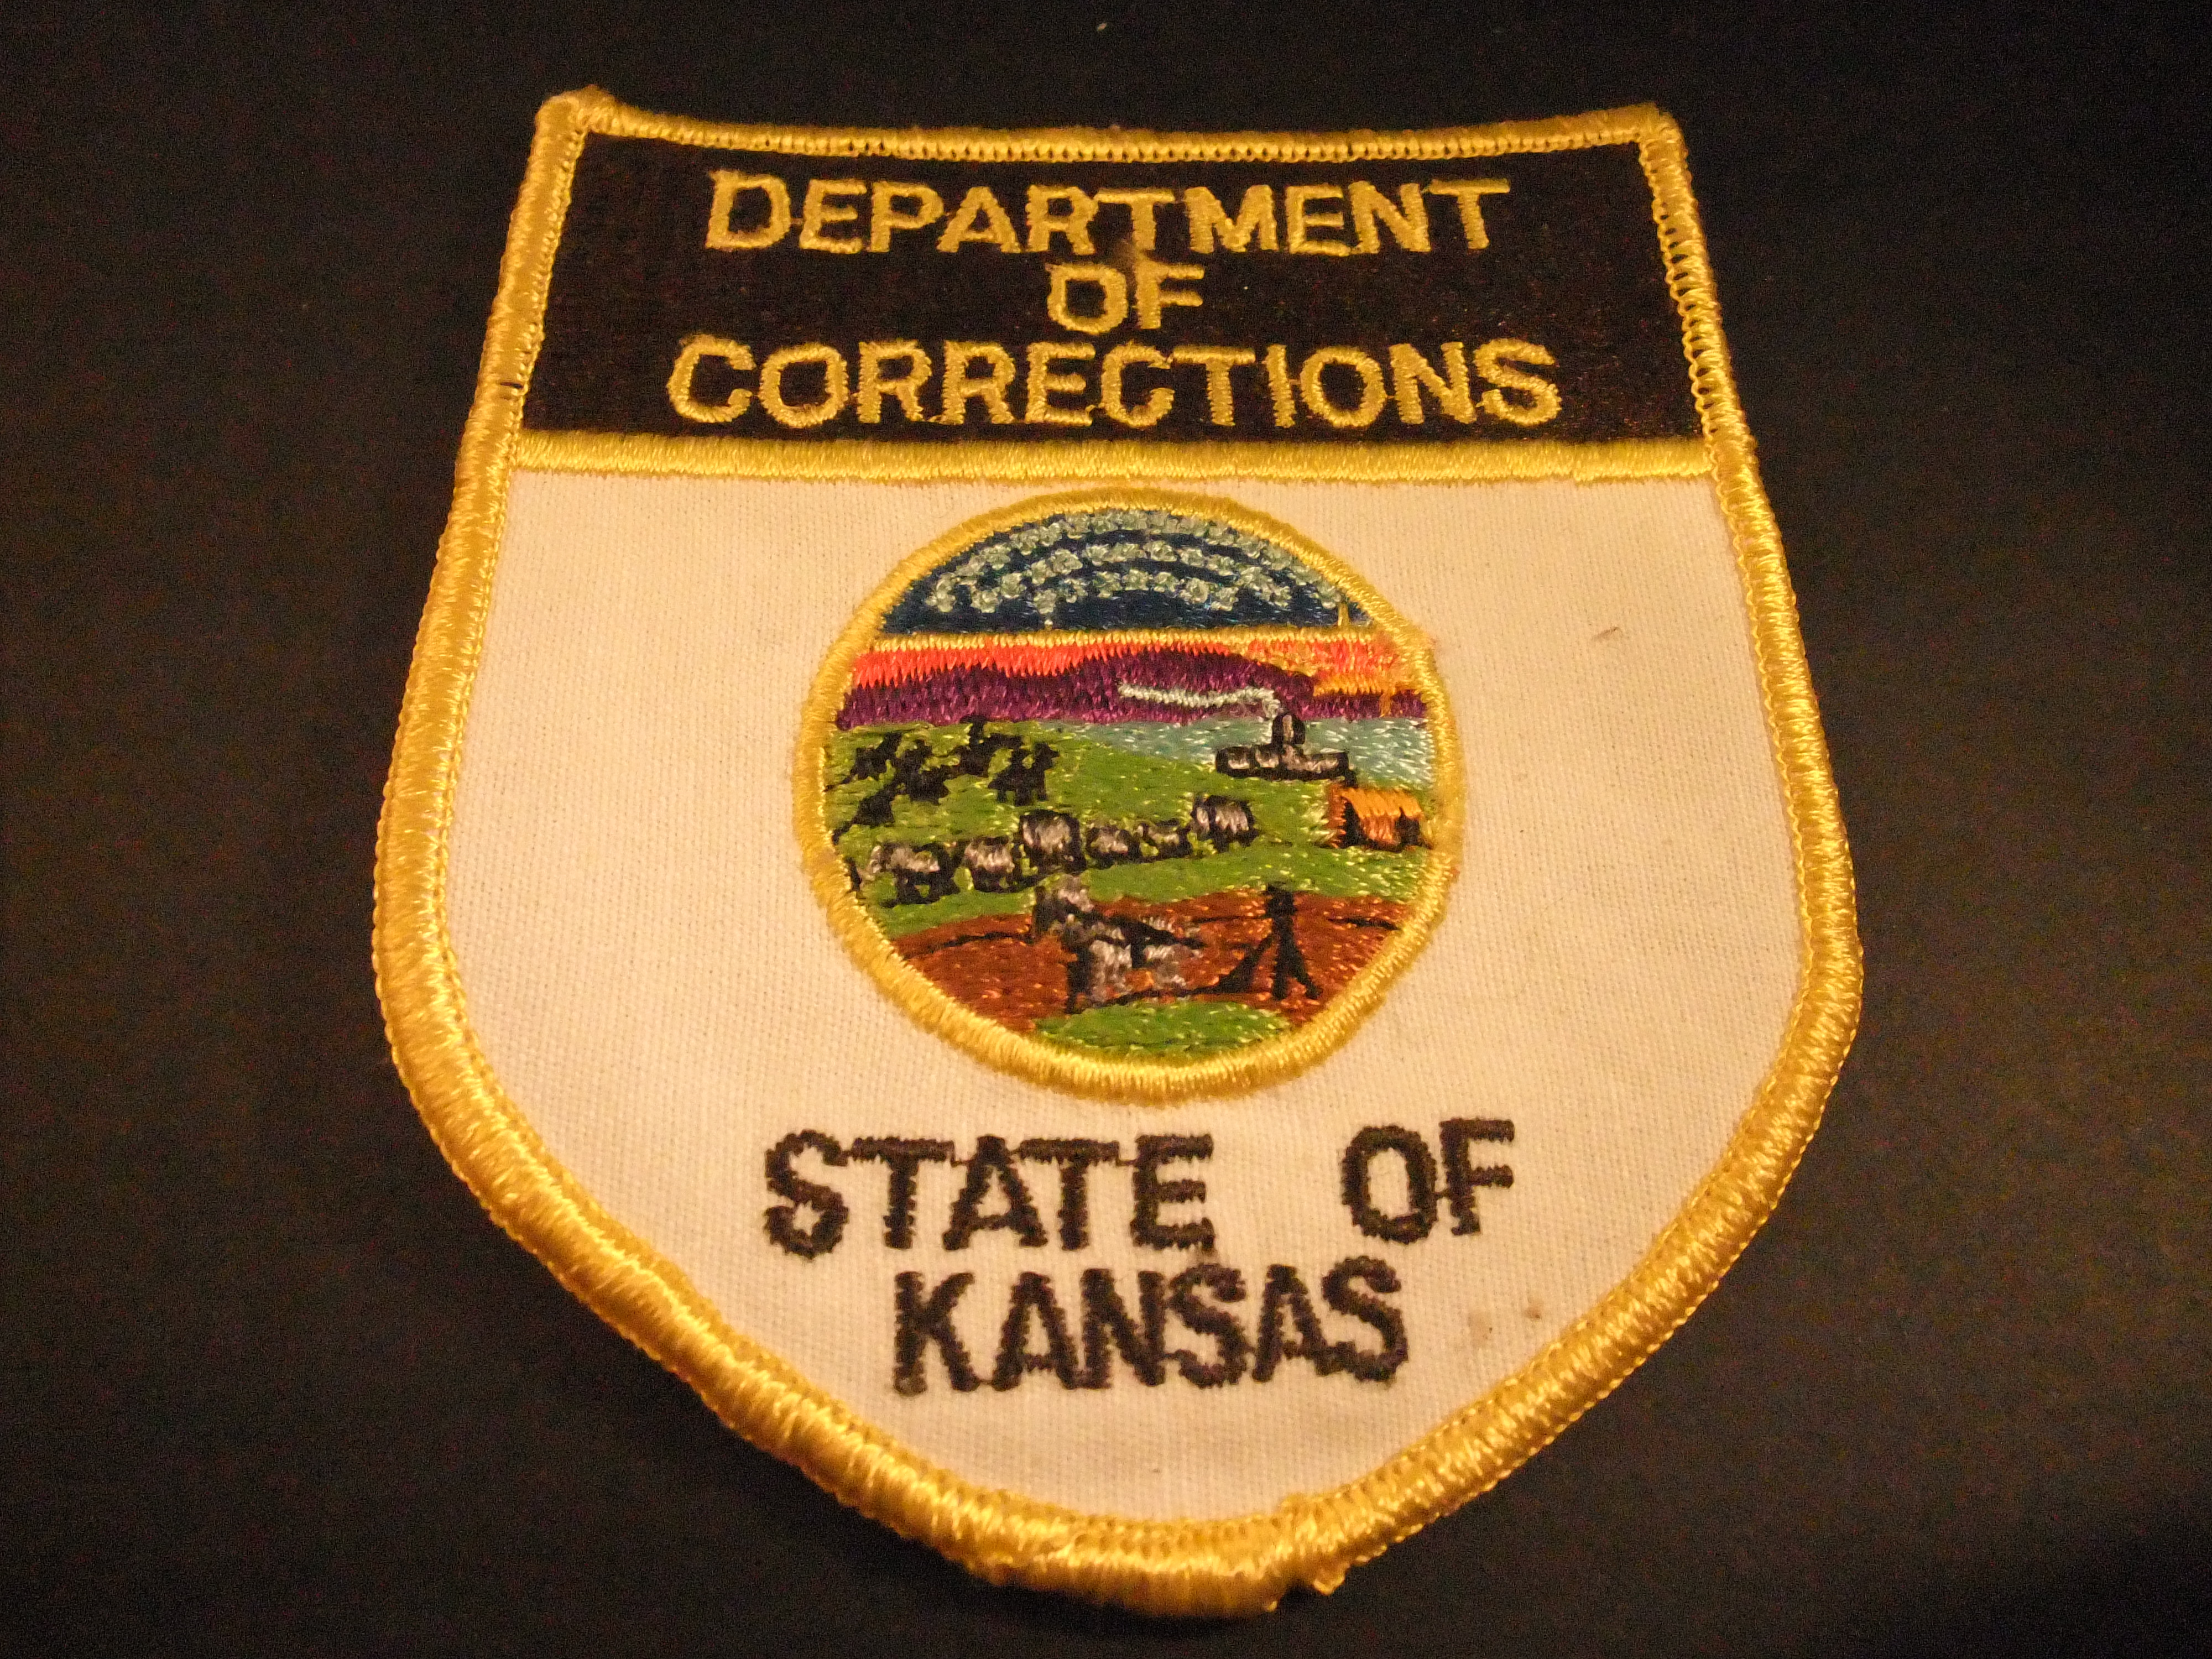 Kansas Department of Corrections (Penitentiaire inrichting) badge